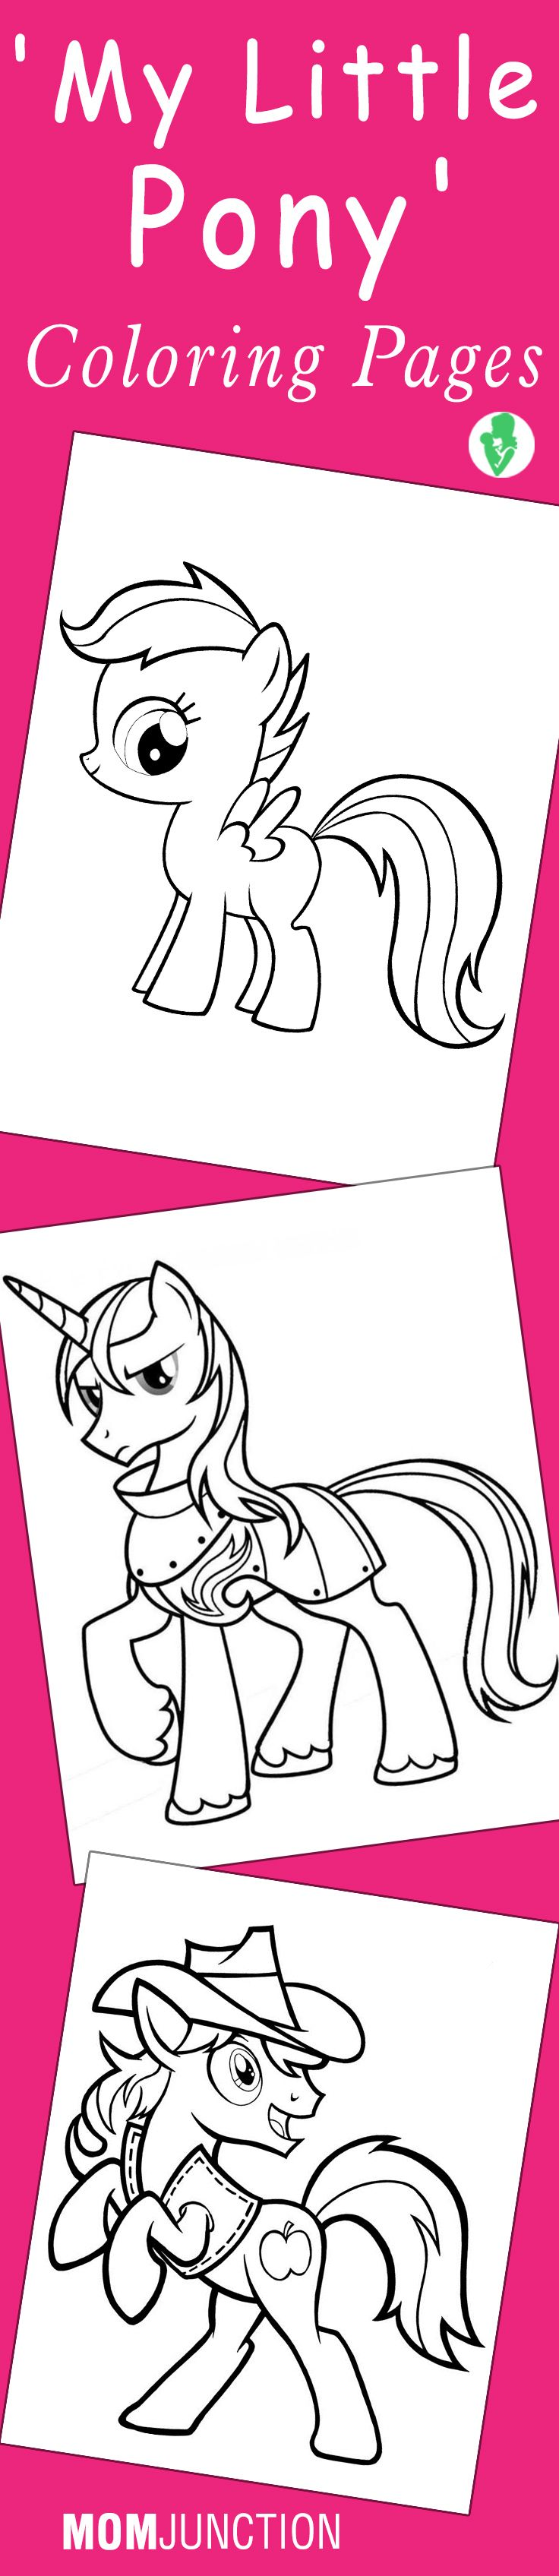 My Little Pony coloring pages // Páginas para colorear de Mi pequeño pony